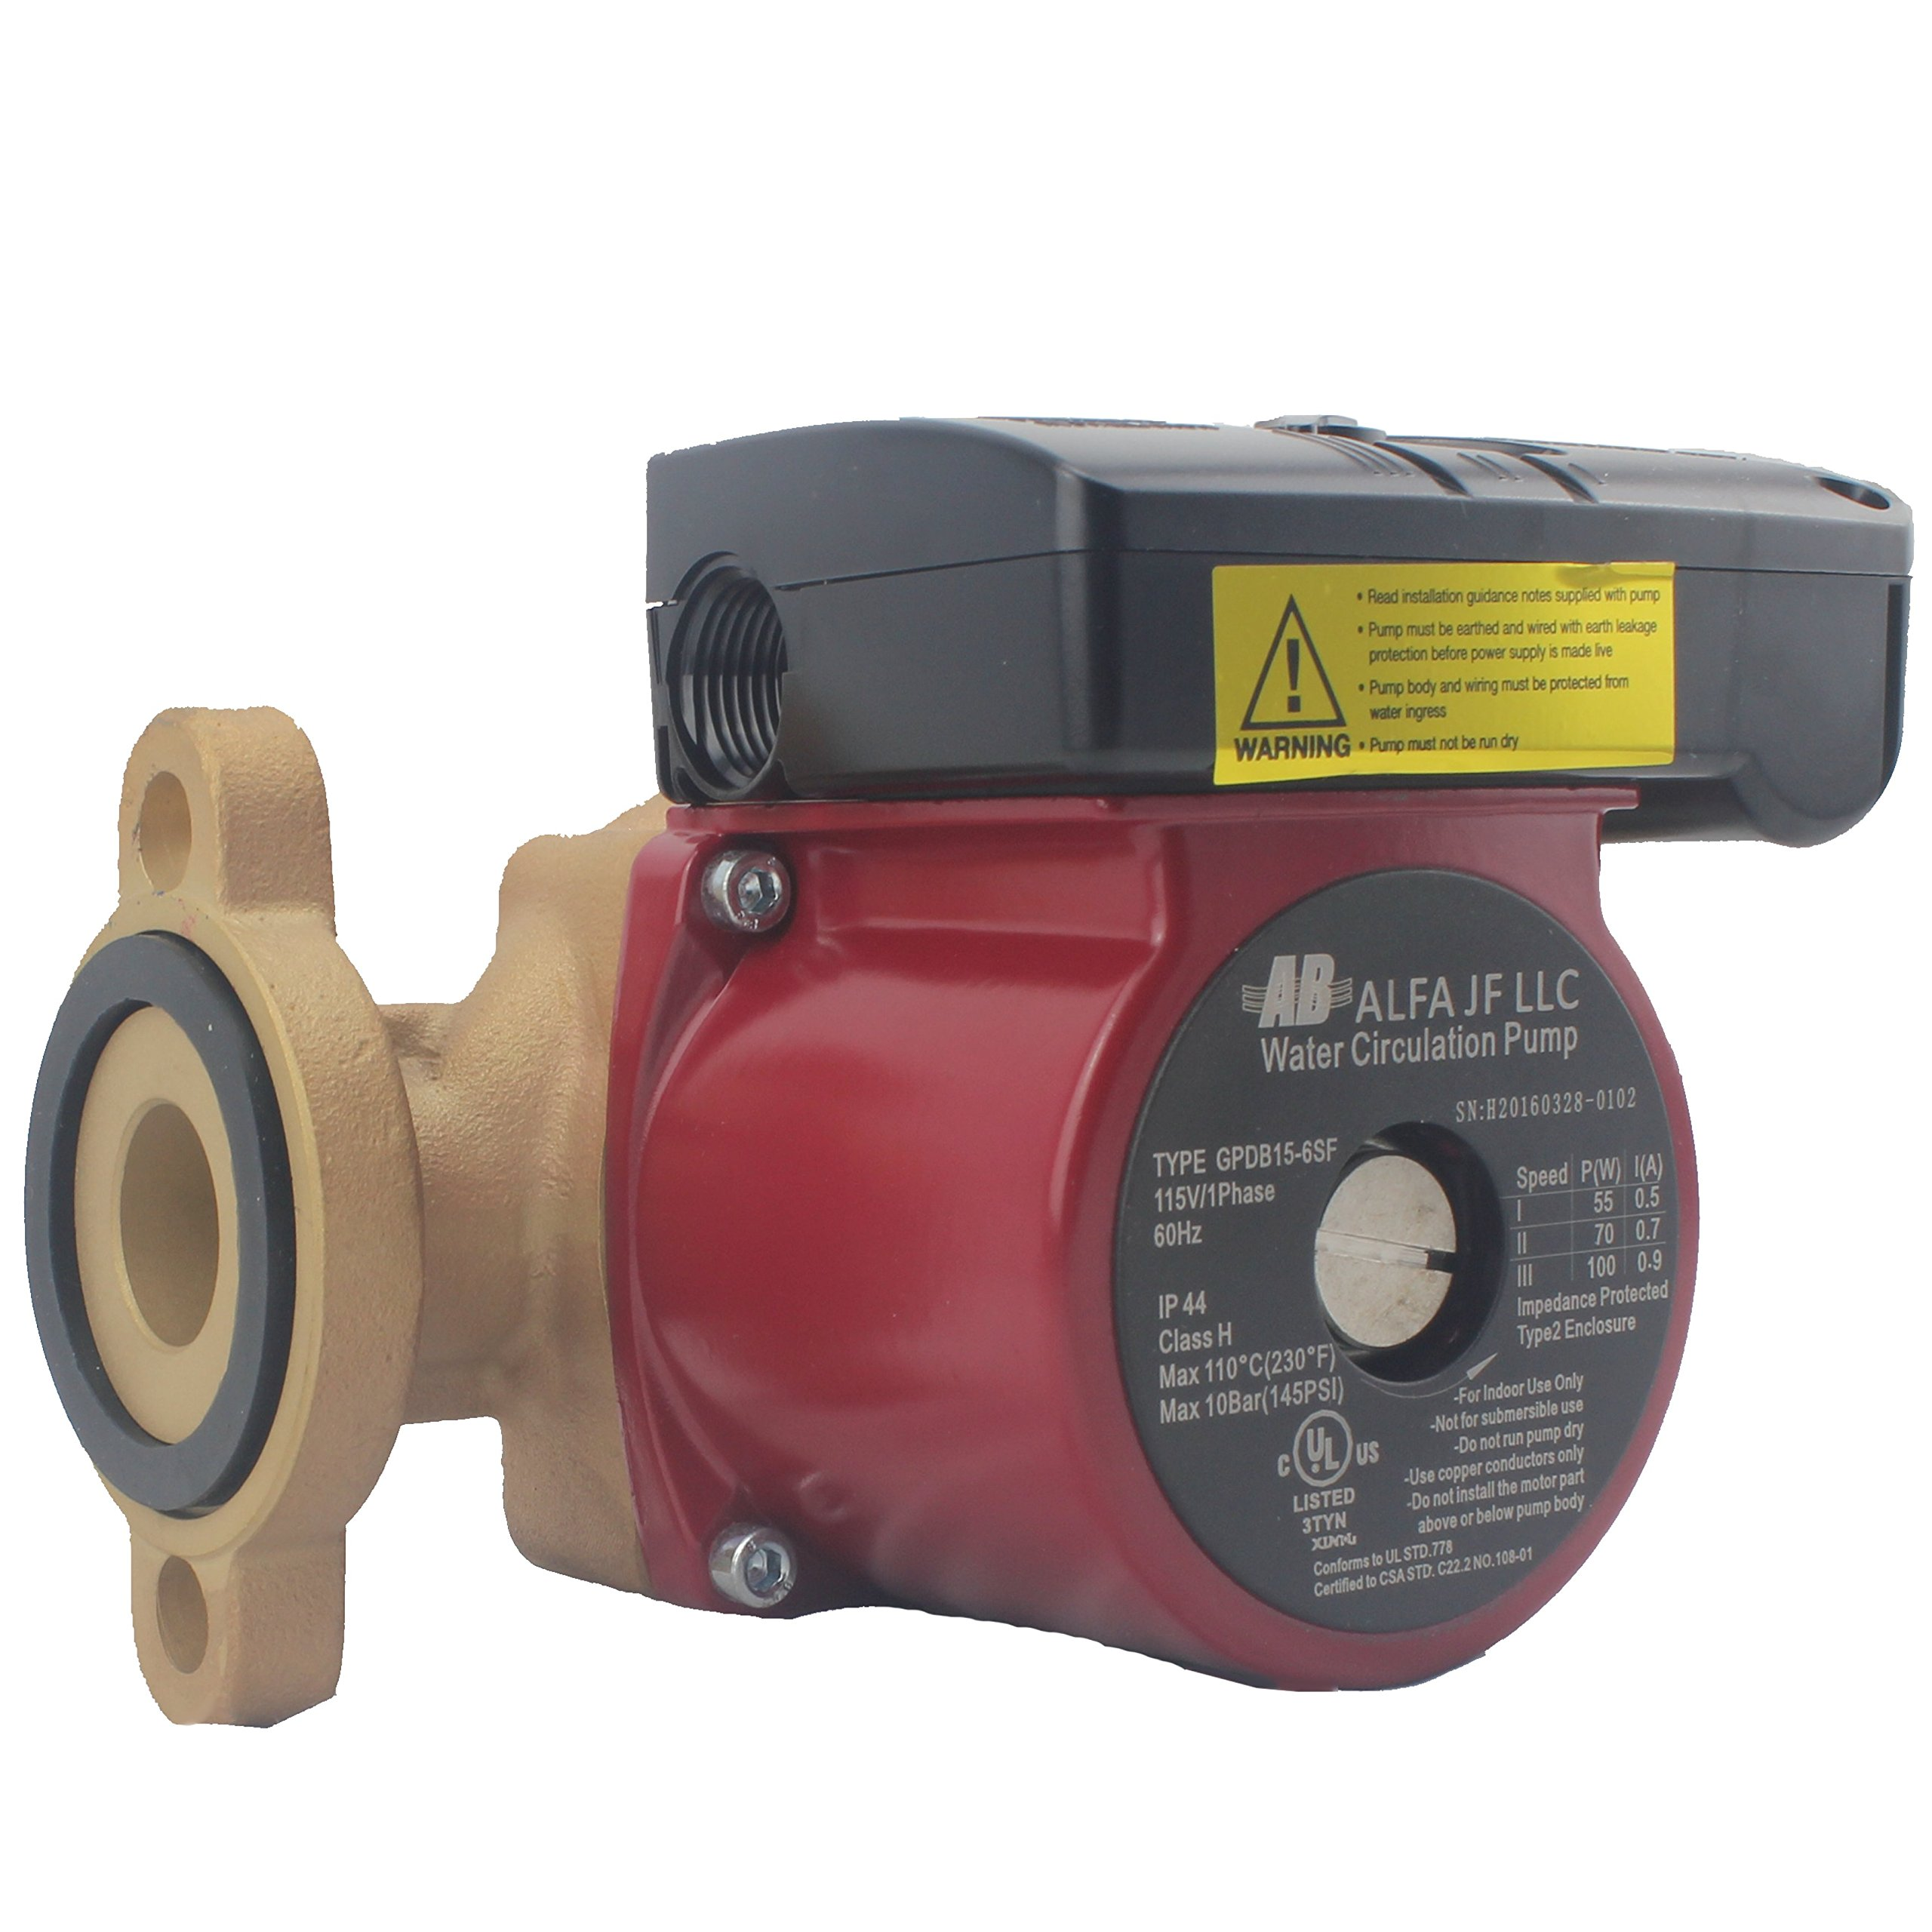 Recirculating Pump Bronze 3 Speed for Domestic Hot Water Heating, Floor Heating, Snow Melting by AB